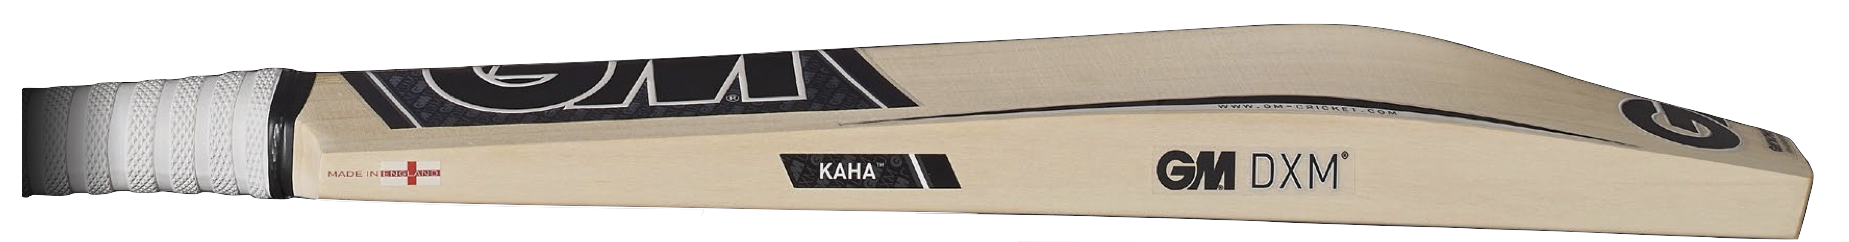 Gunn & Moore Kaha L525 2017 Cricket Bat Review